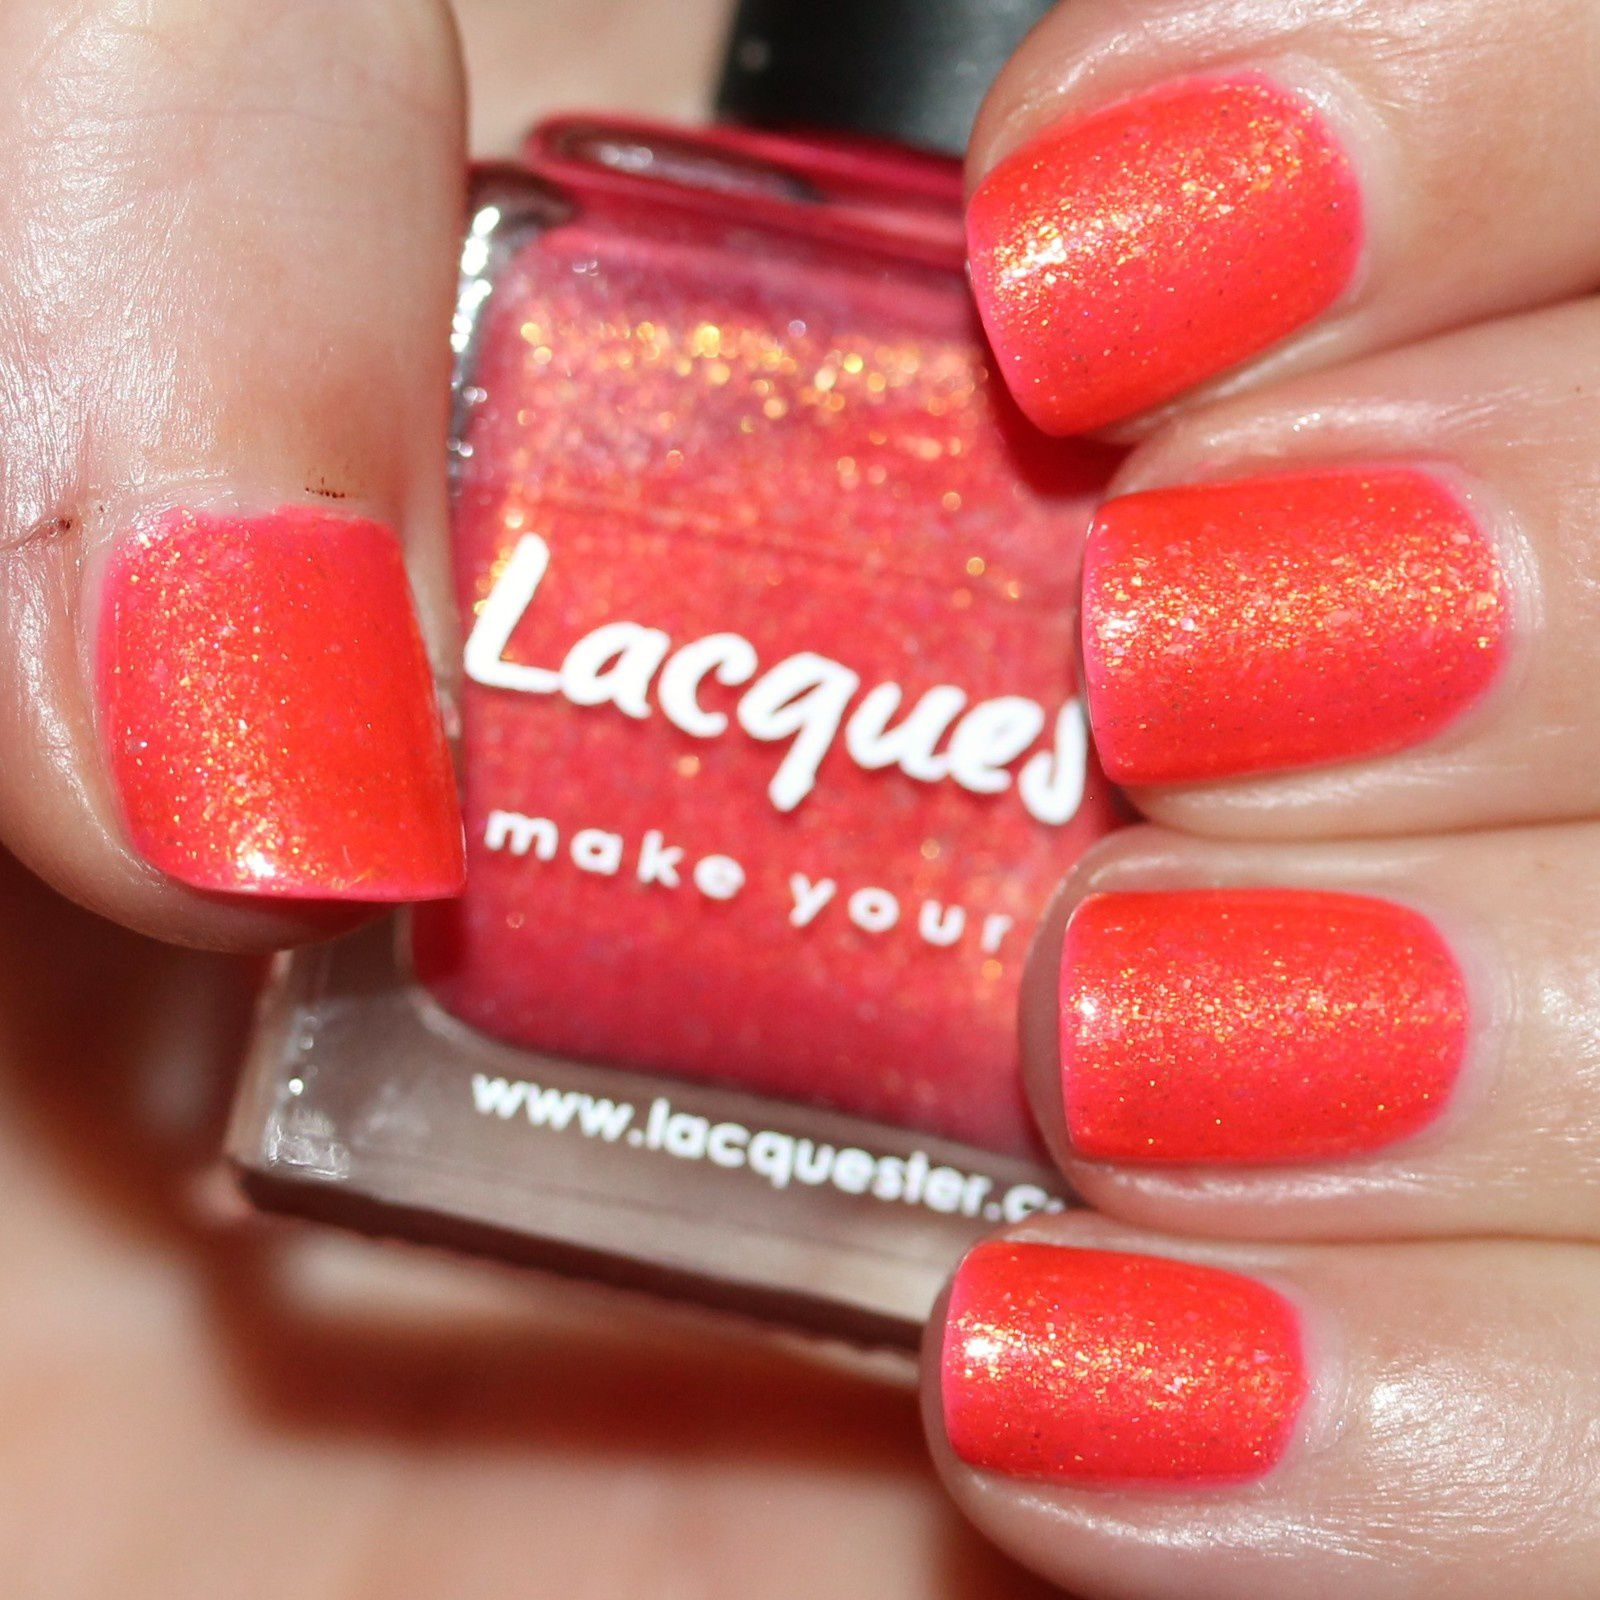 Essie Protein Base Coat / Lacquester Bahama Mama (New Version) / HK Girl Top Coat